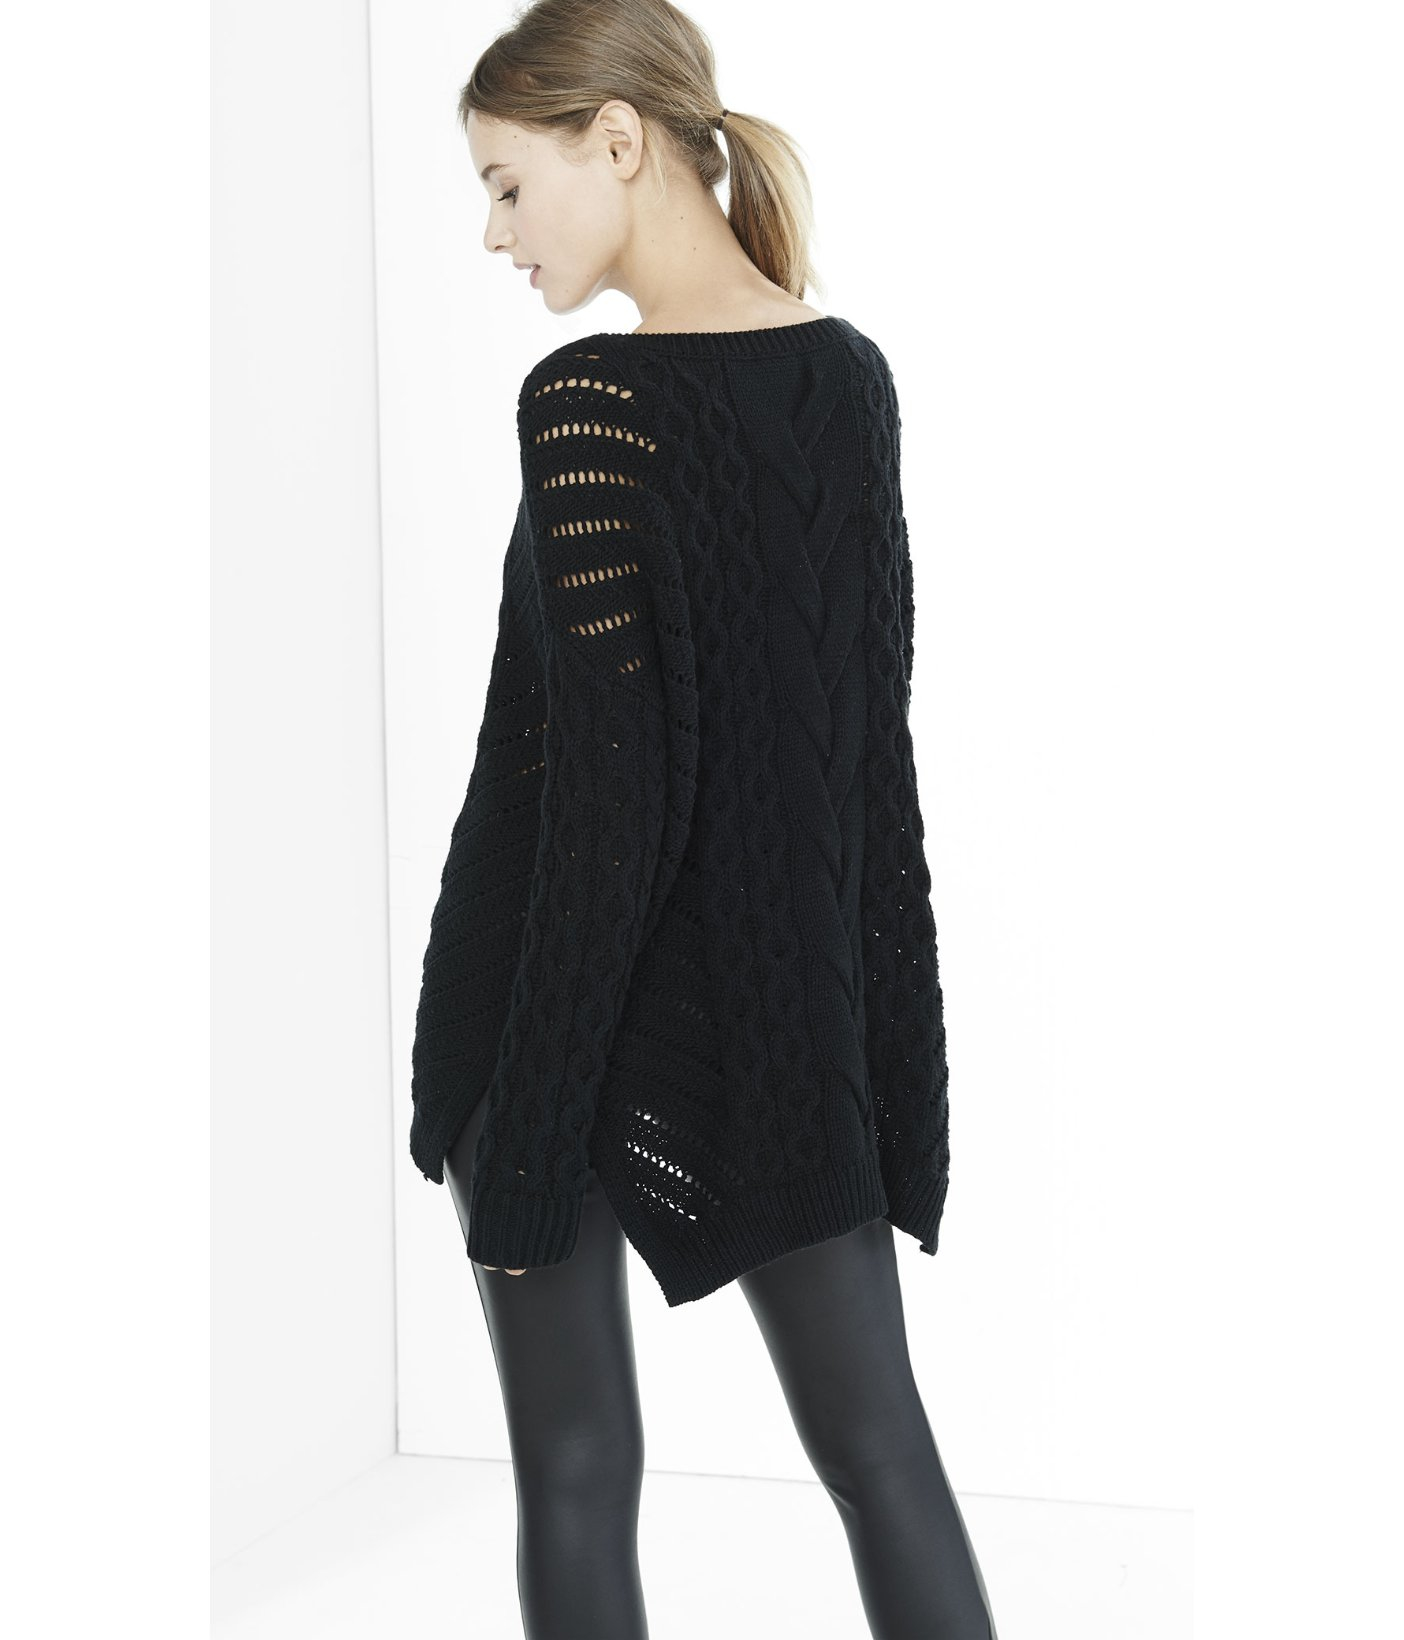 Express Oversized Open Cable Knit Tunic Sweater in Black | Lyst